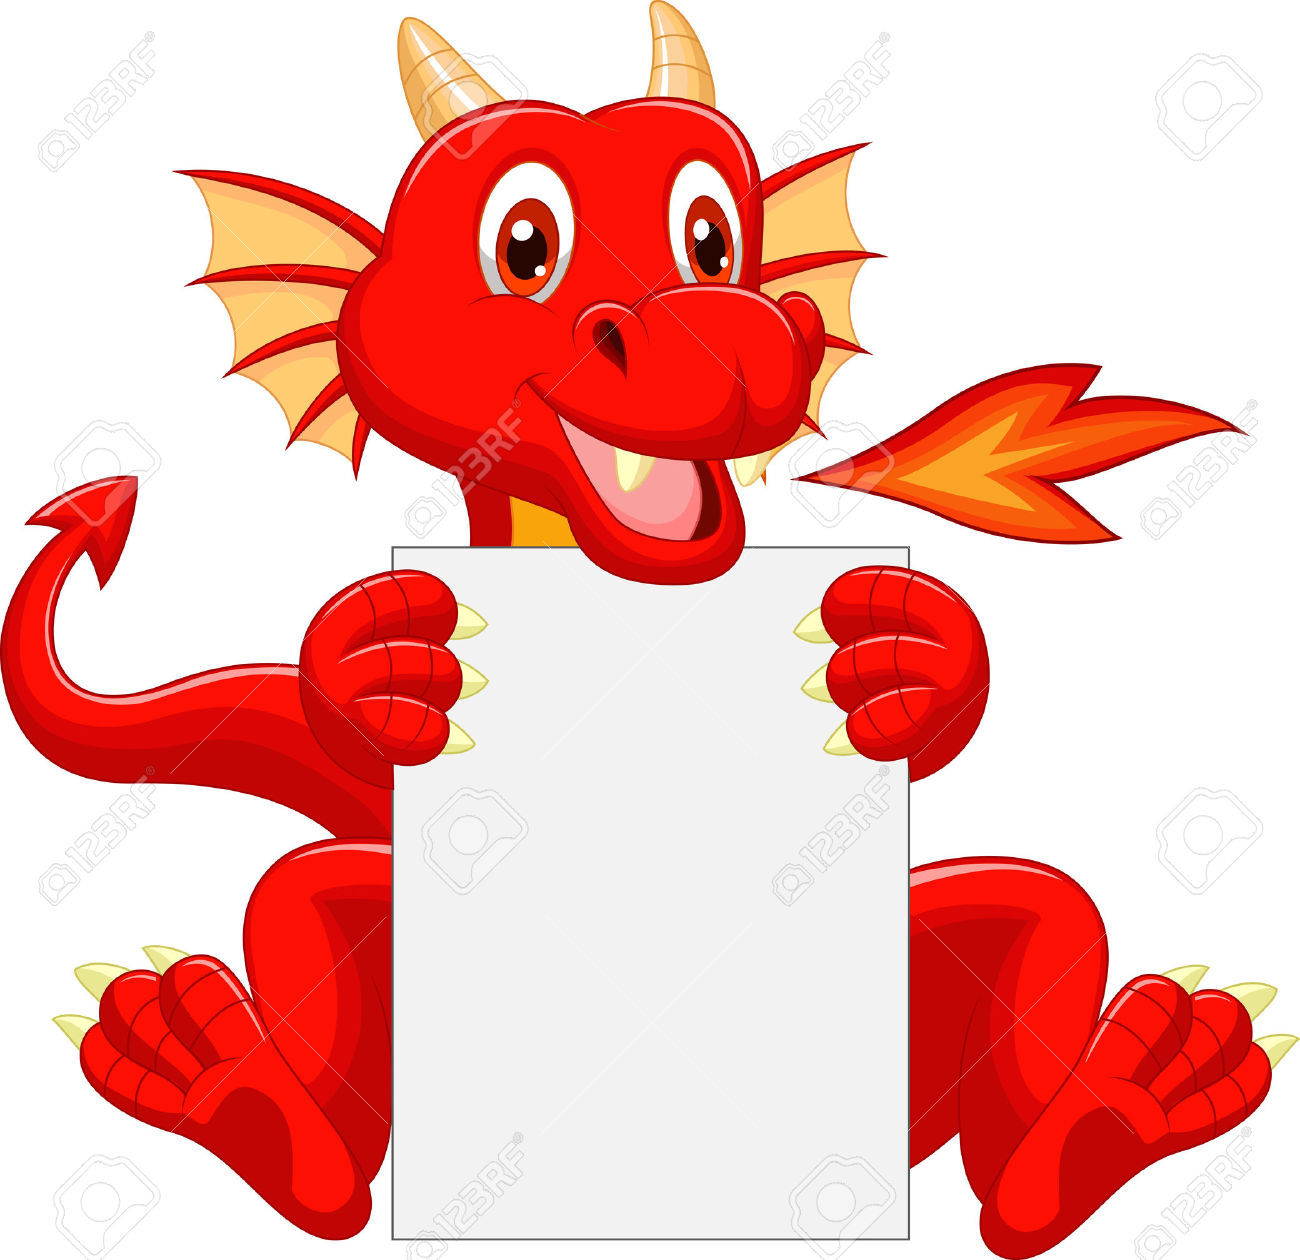 Baby Dragon Clipart